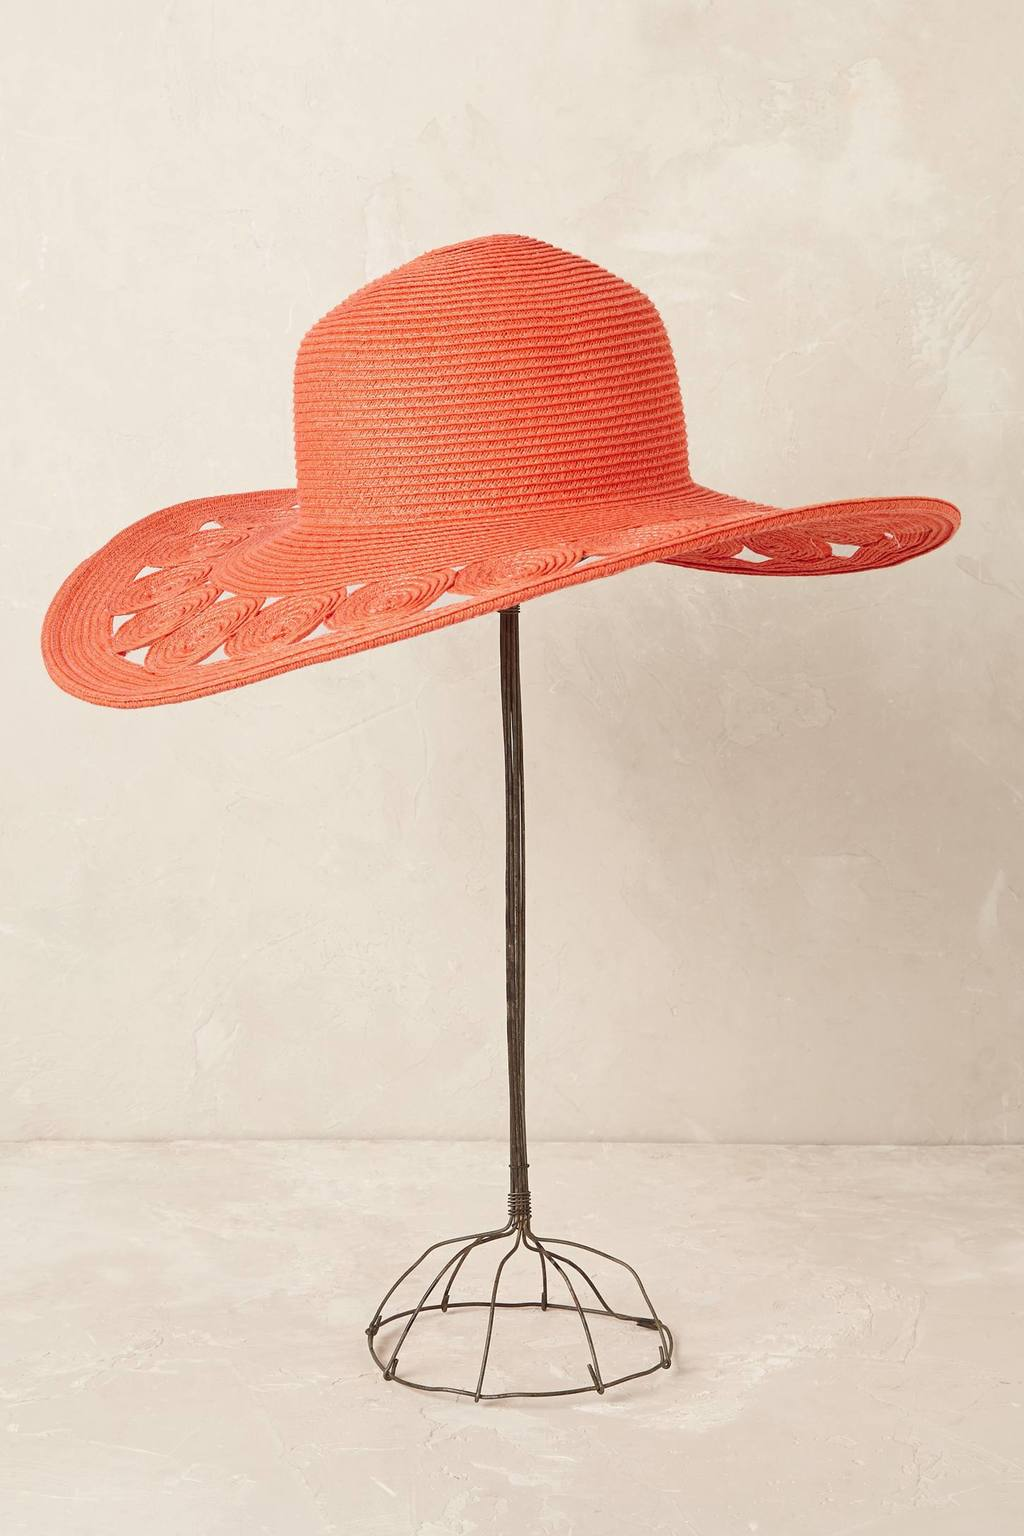 Deja Cutout Floppy Hat - predominant colour: coral; type of pattern: standard; style: sunhat; size: large; material: macrame/raffia/straw; pattern: plain; occasions: holiday; season: s/s 2016; wardrobe: holiday